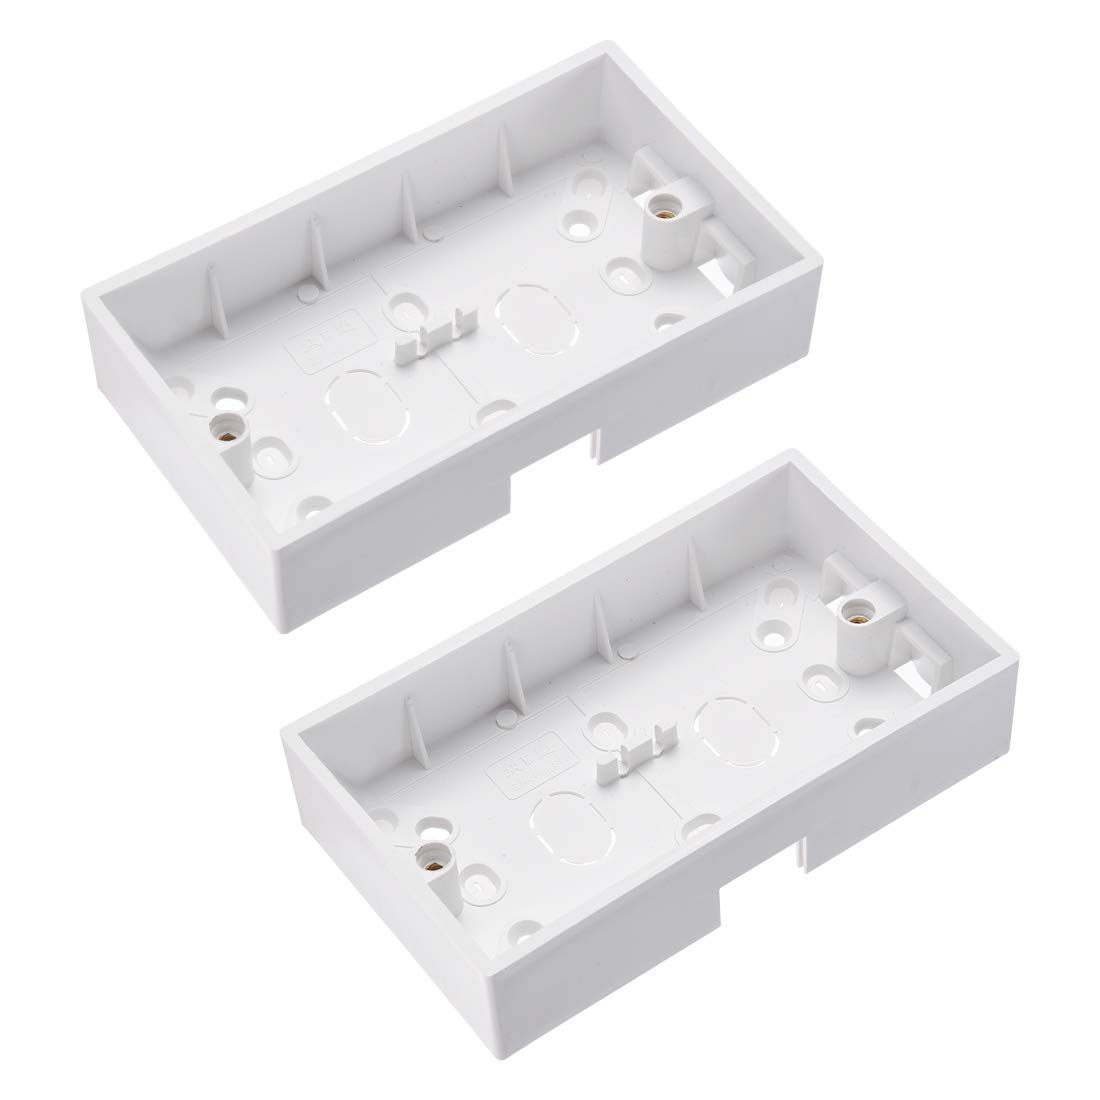 uxcell Wall Switch Box Deep Case Recessed Mount 86 Type Single Gang White 6pcs